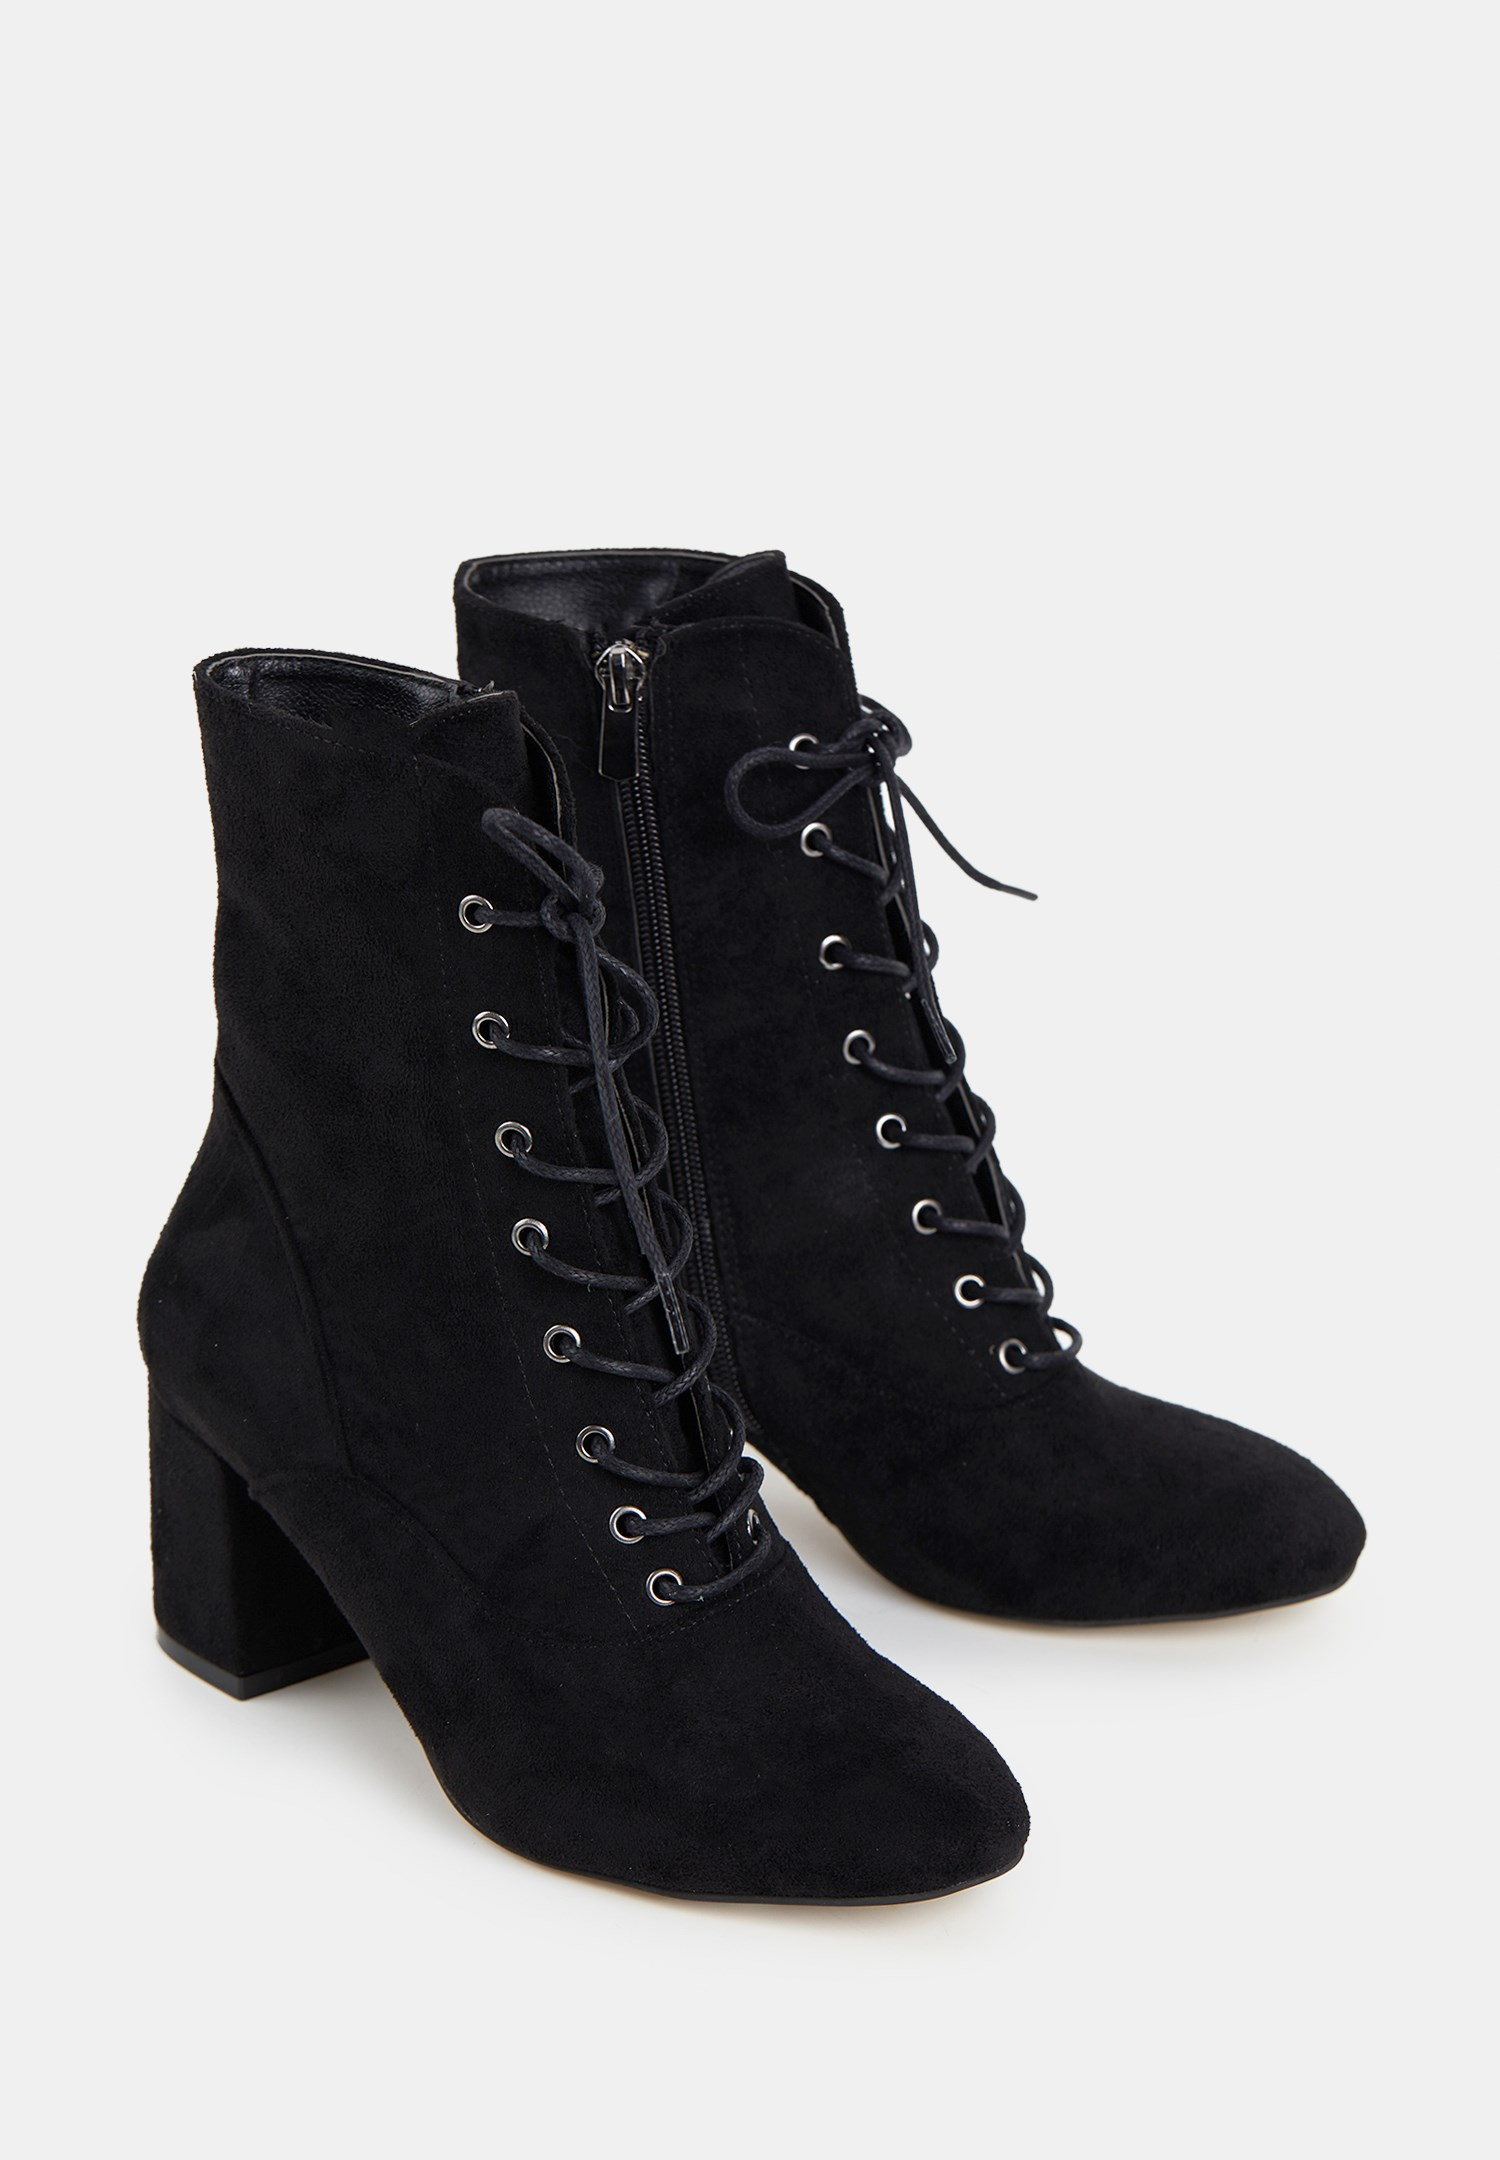 Women Black High Heel Shoes with Cord Detail